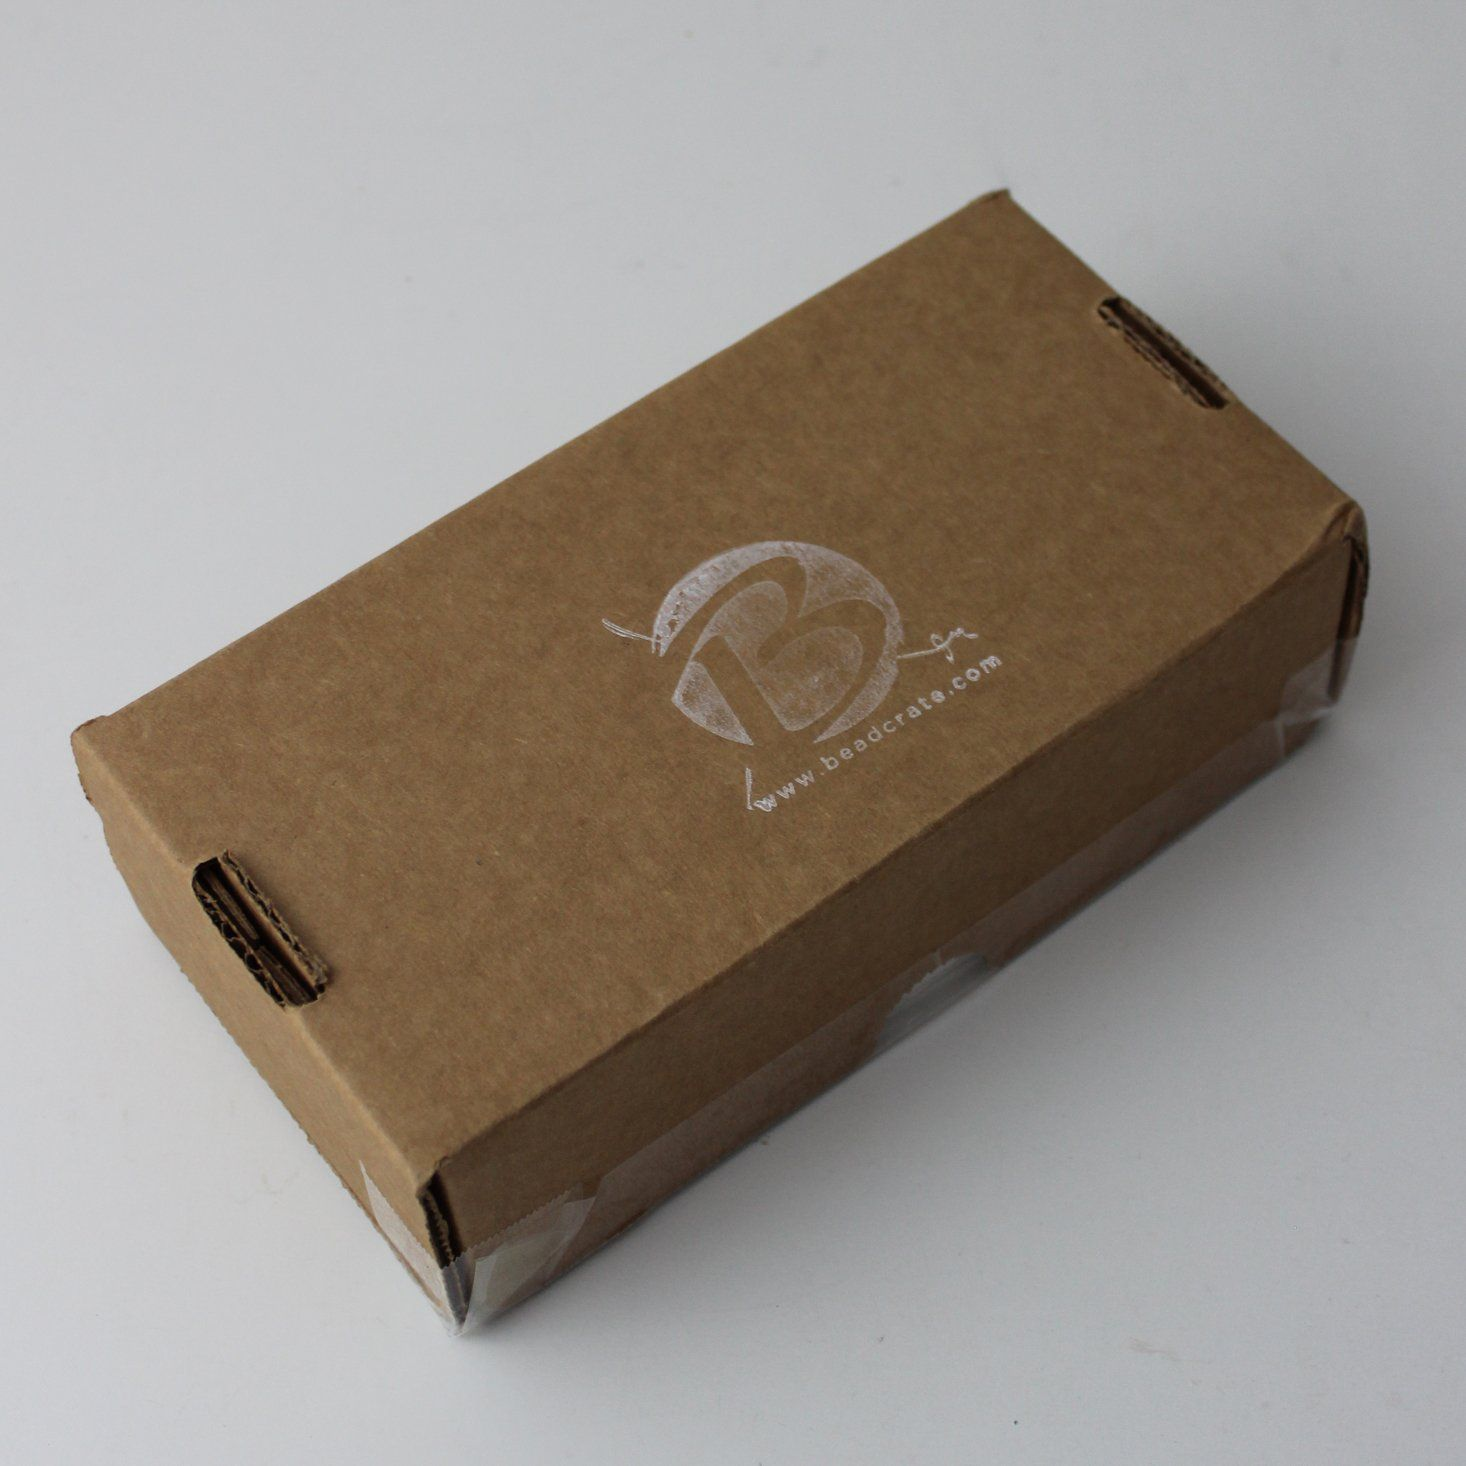 Beadcrate Subscription Box Review May 2020 In 2020 Craft Box Subscription Craft Subscription Polymer Clay Miniatures